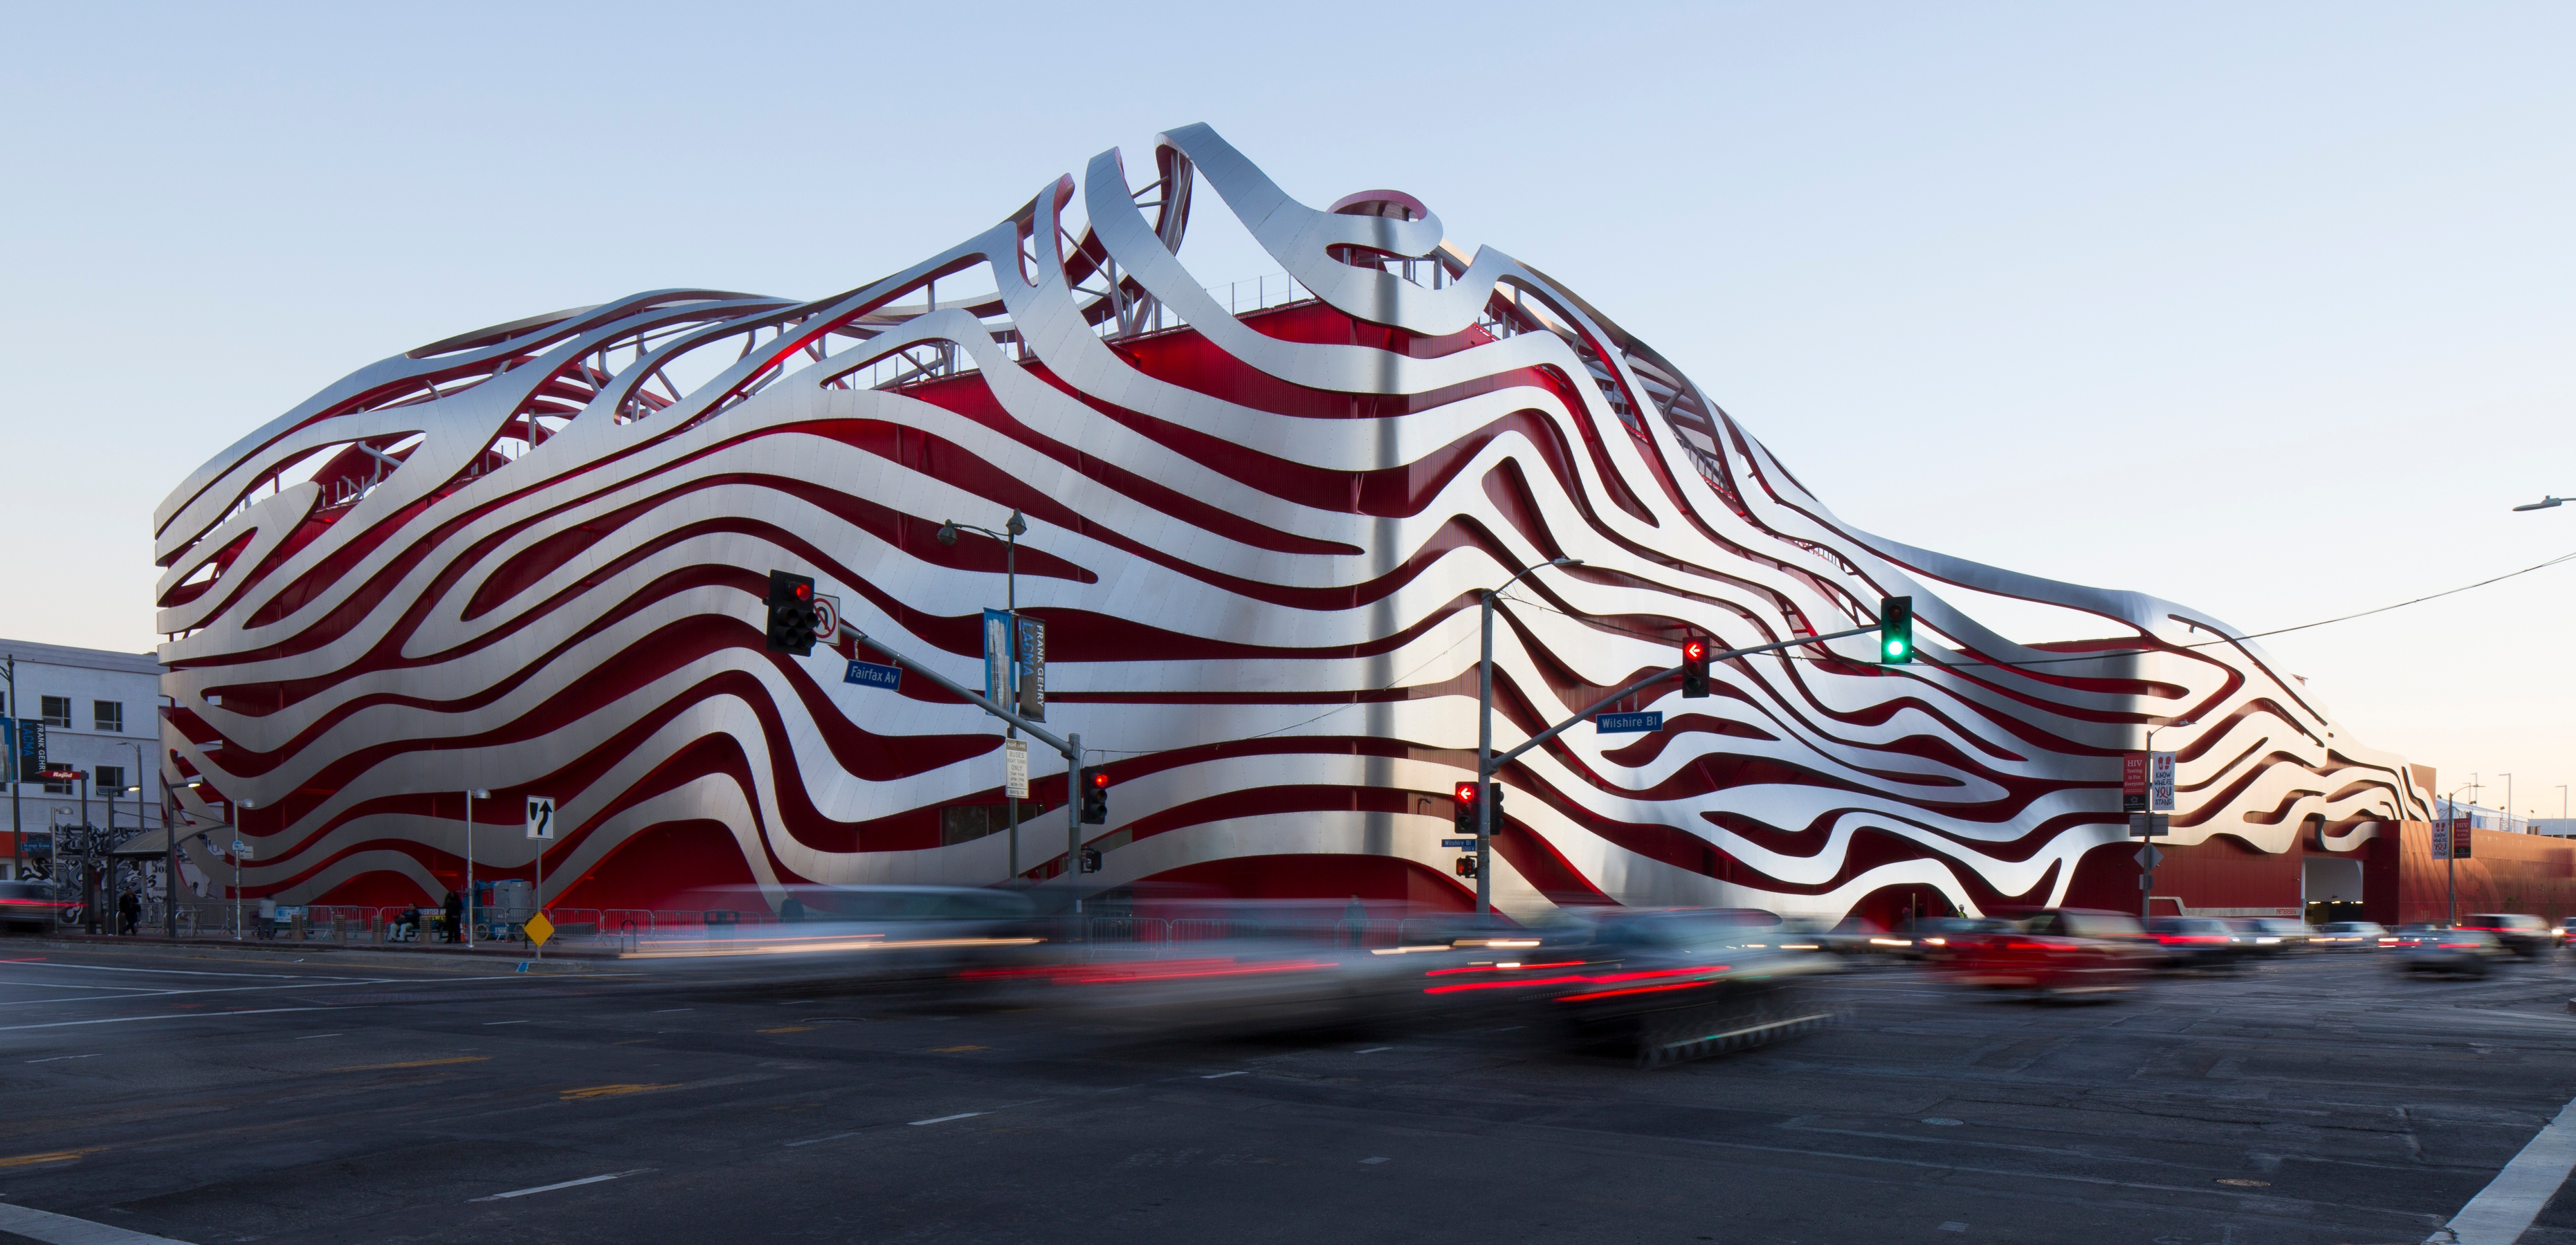 Petersen_Automotive_Museum.jpg